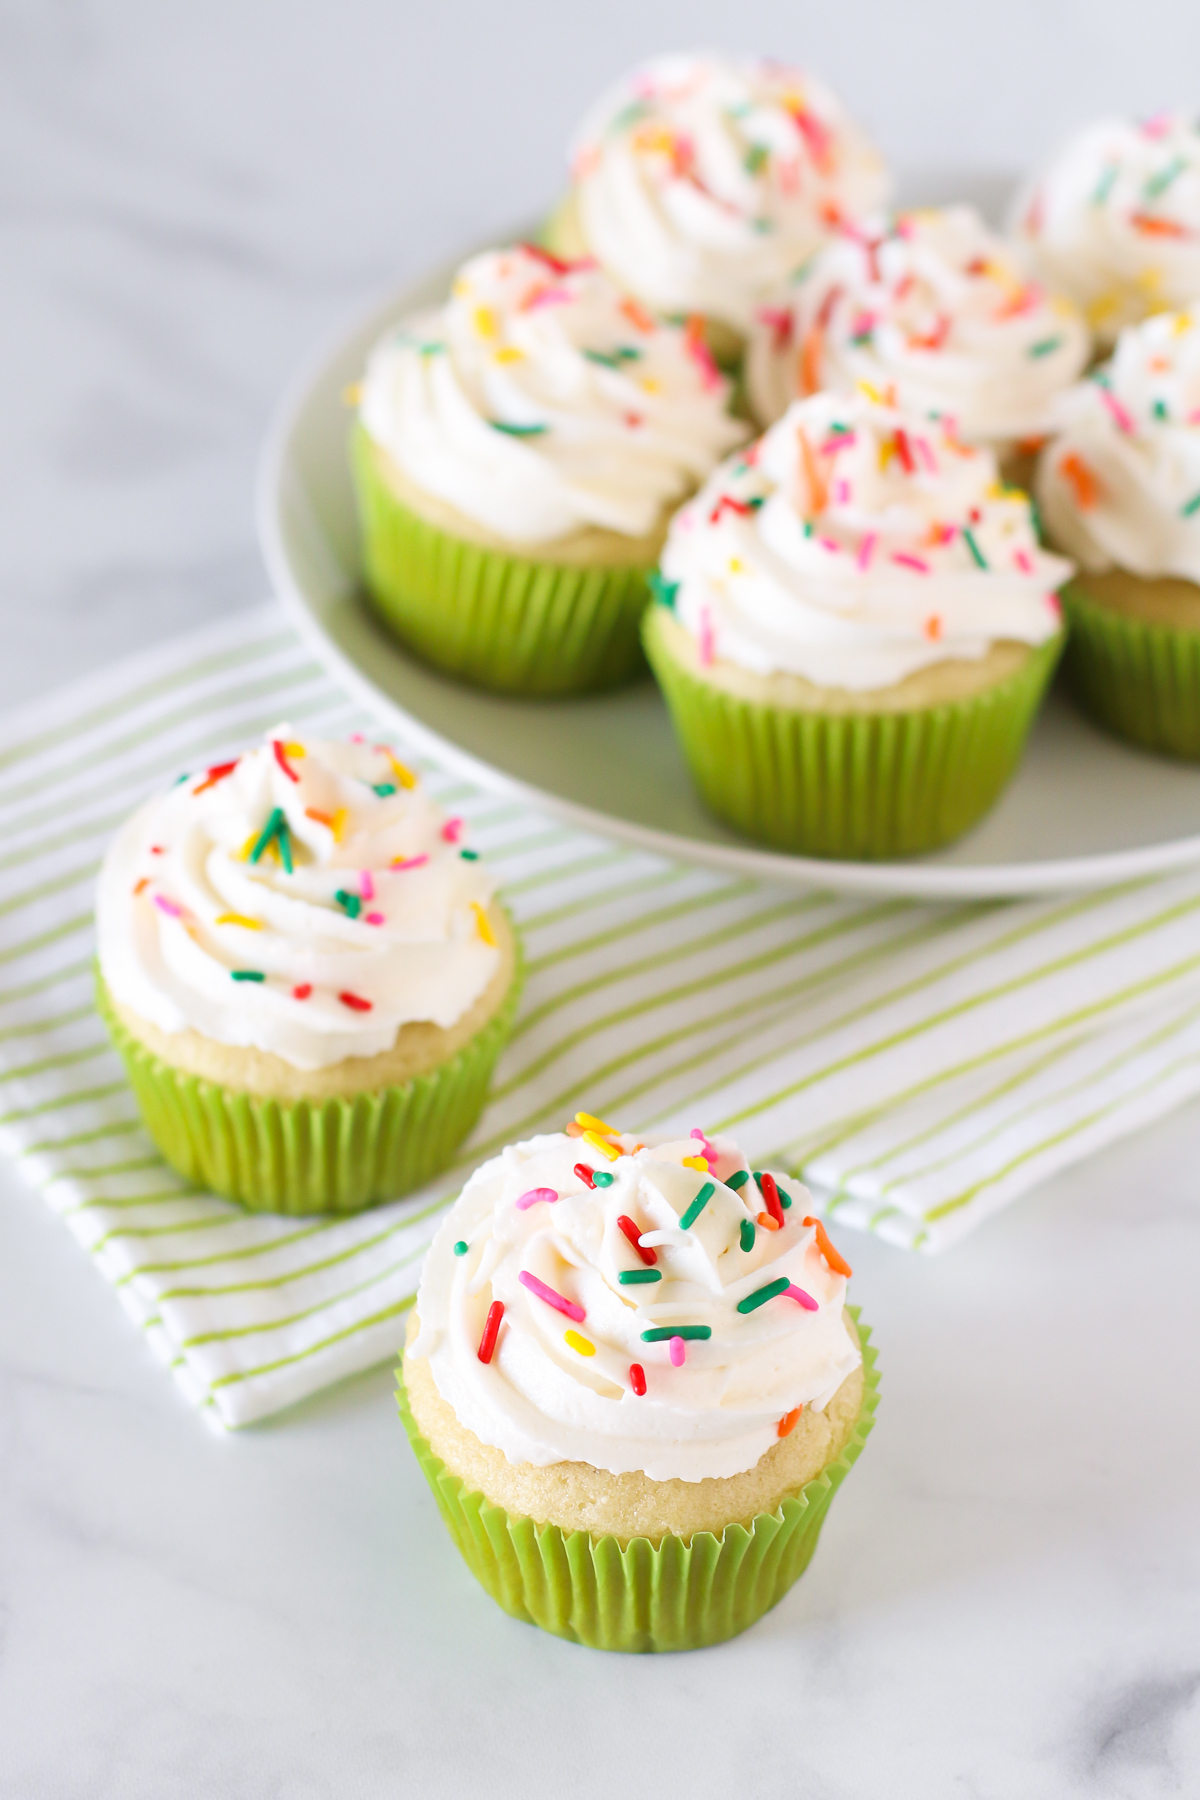 Gluten Free Vegan Vanilla Cupcakes. Light, fluffy cupcakes with a whipped, creamy vanilla buttercream. Just about the perfect allergen free cupcake!